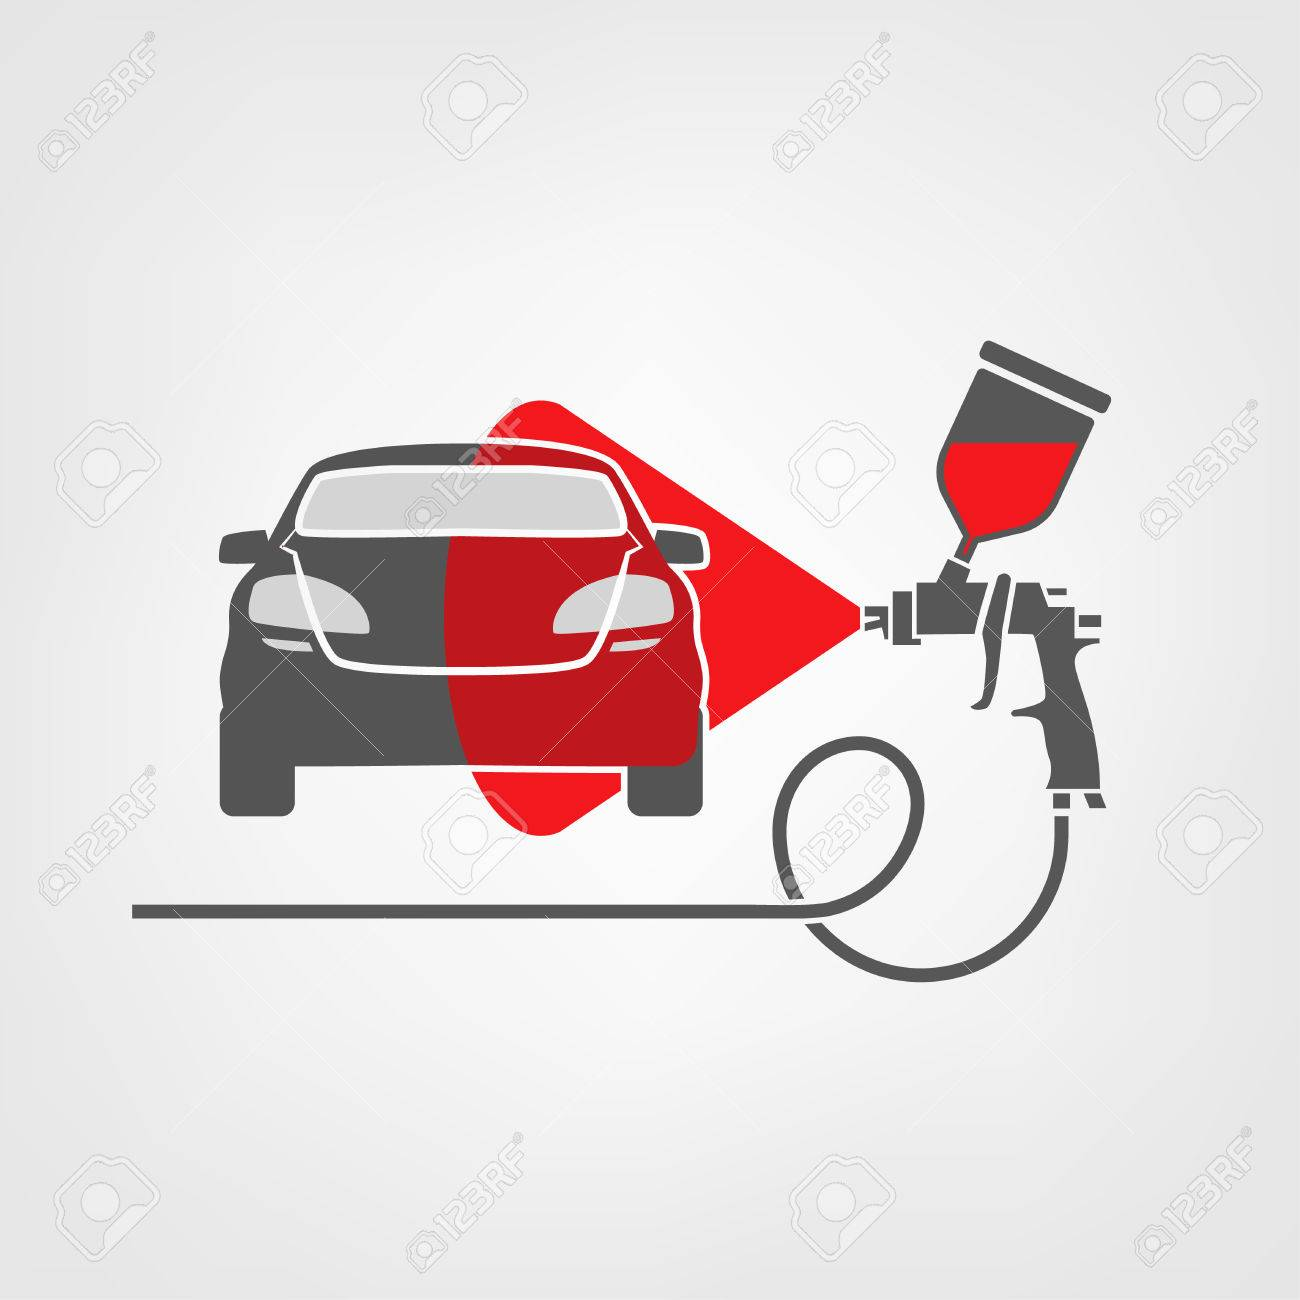 Illustration Of A Car Body Repair Stock Vector